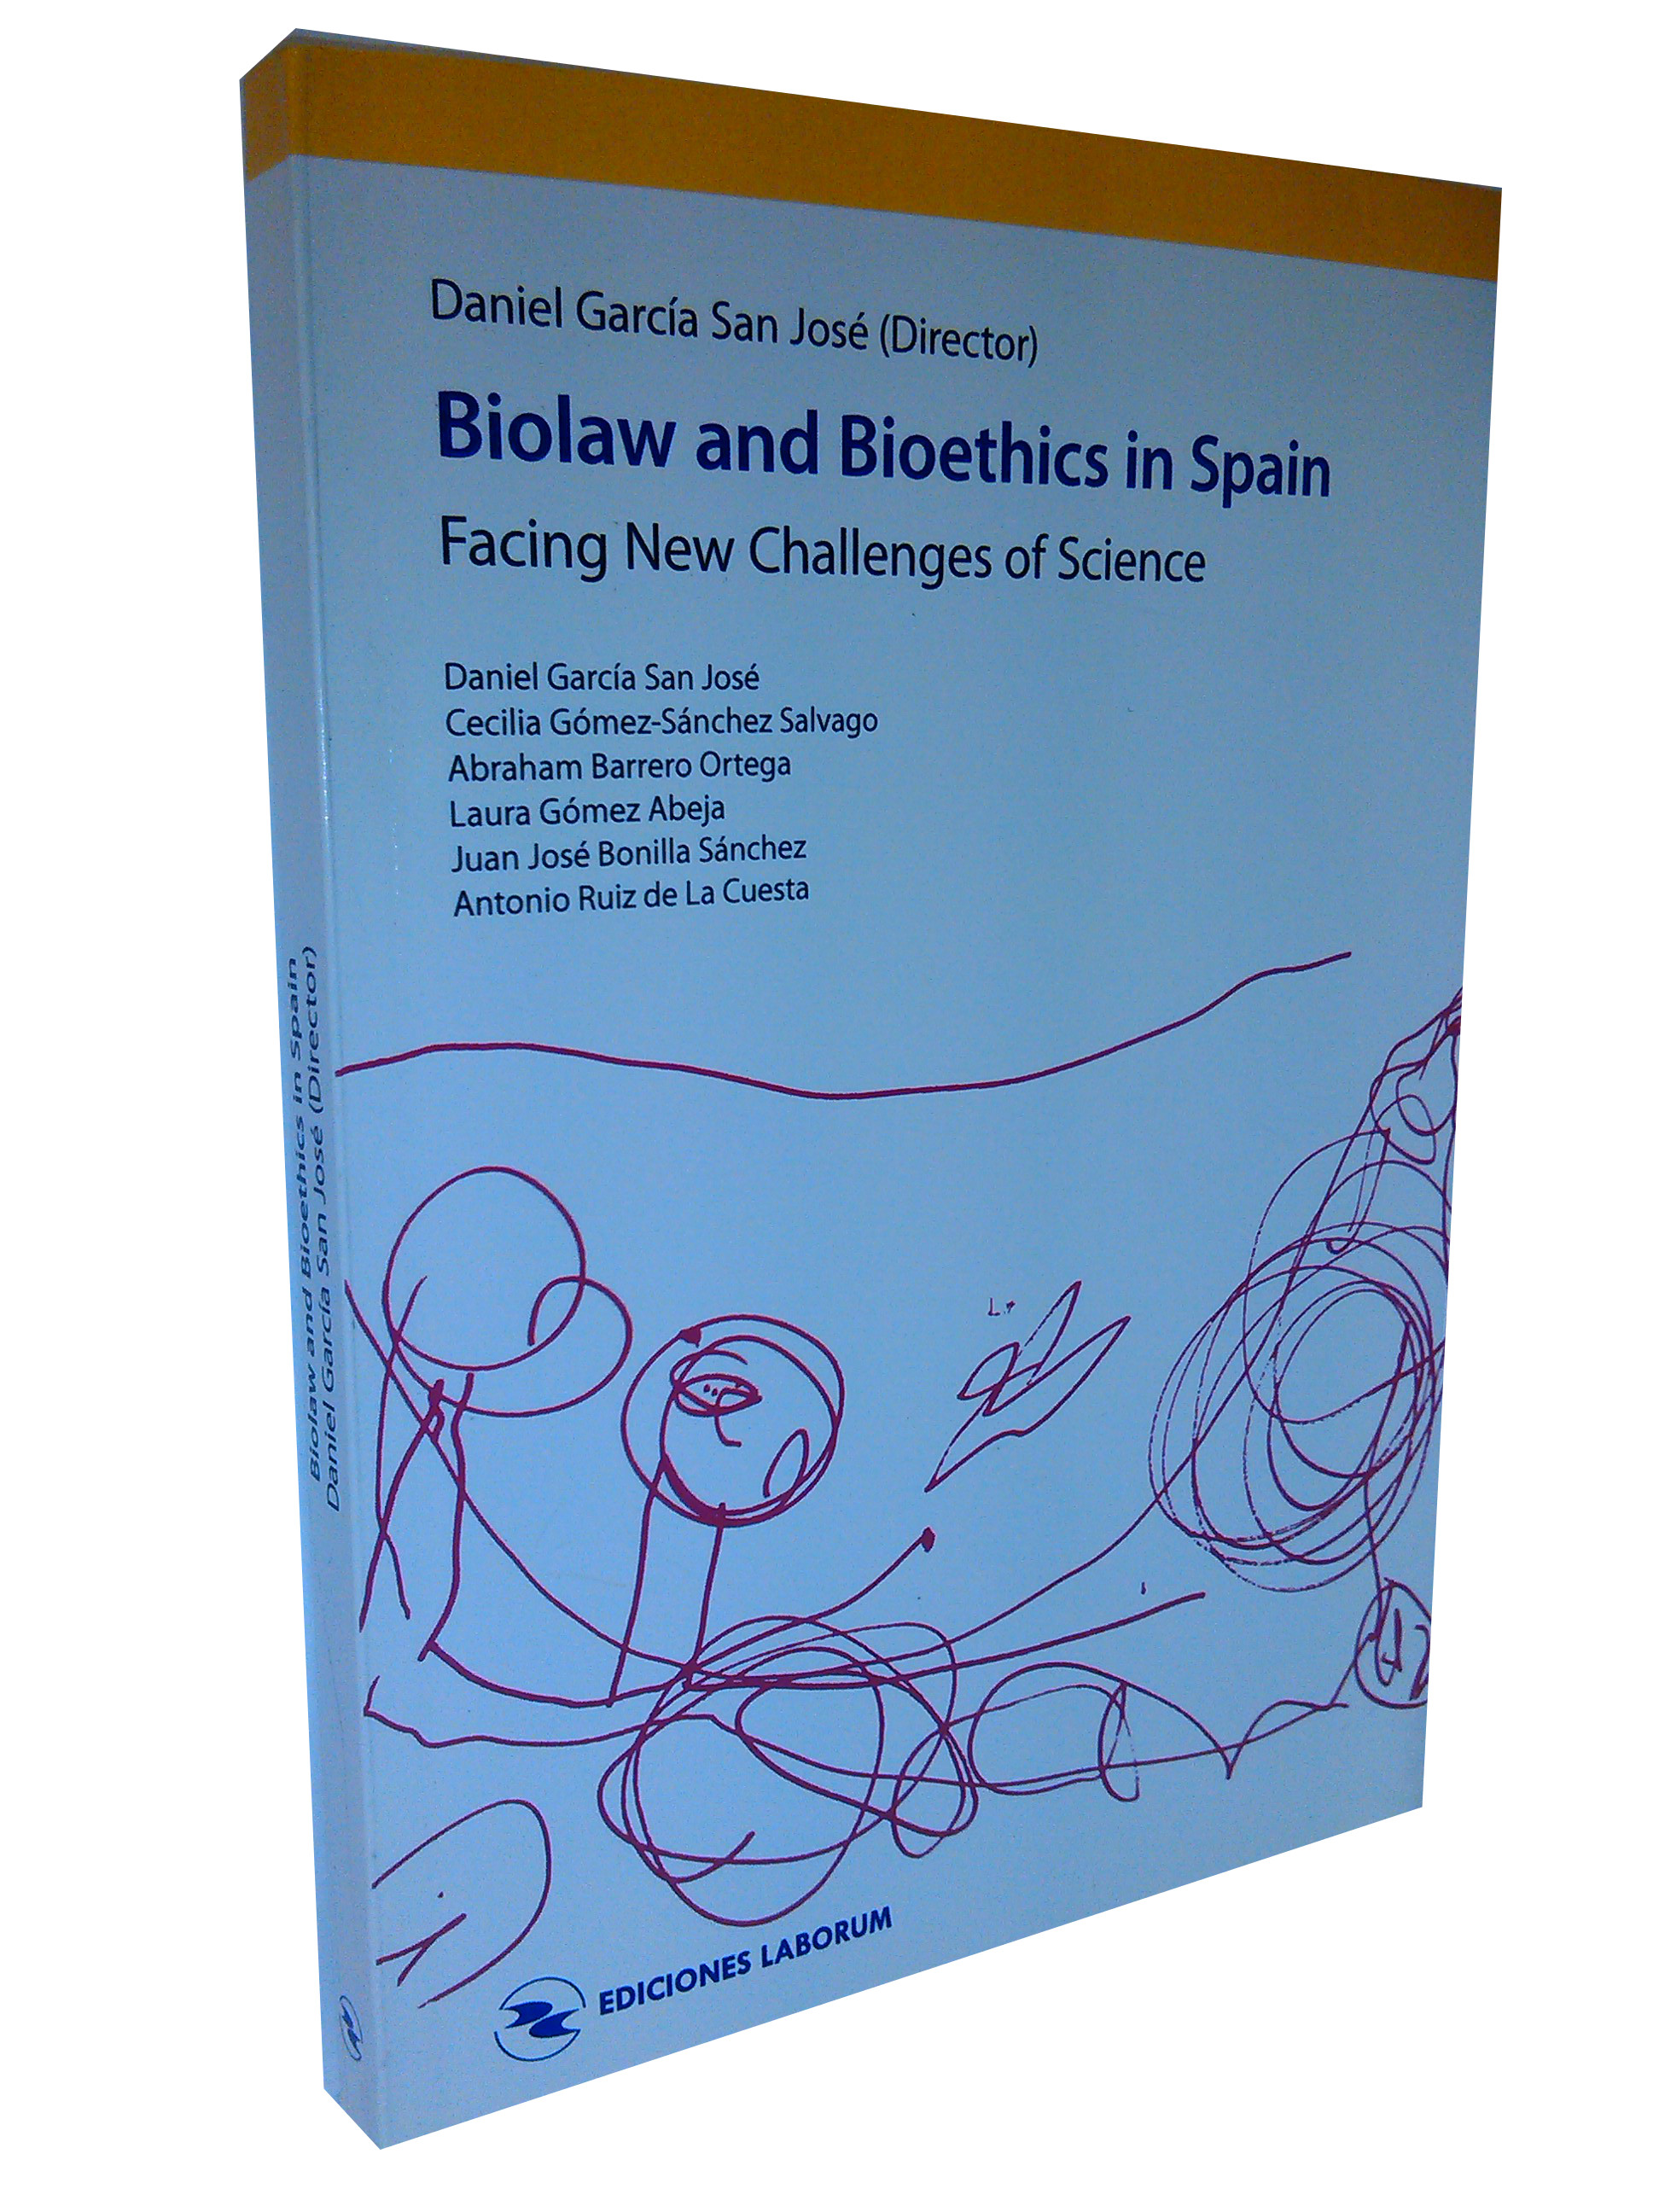 Biolaw and Bioethics in Spain